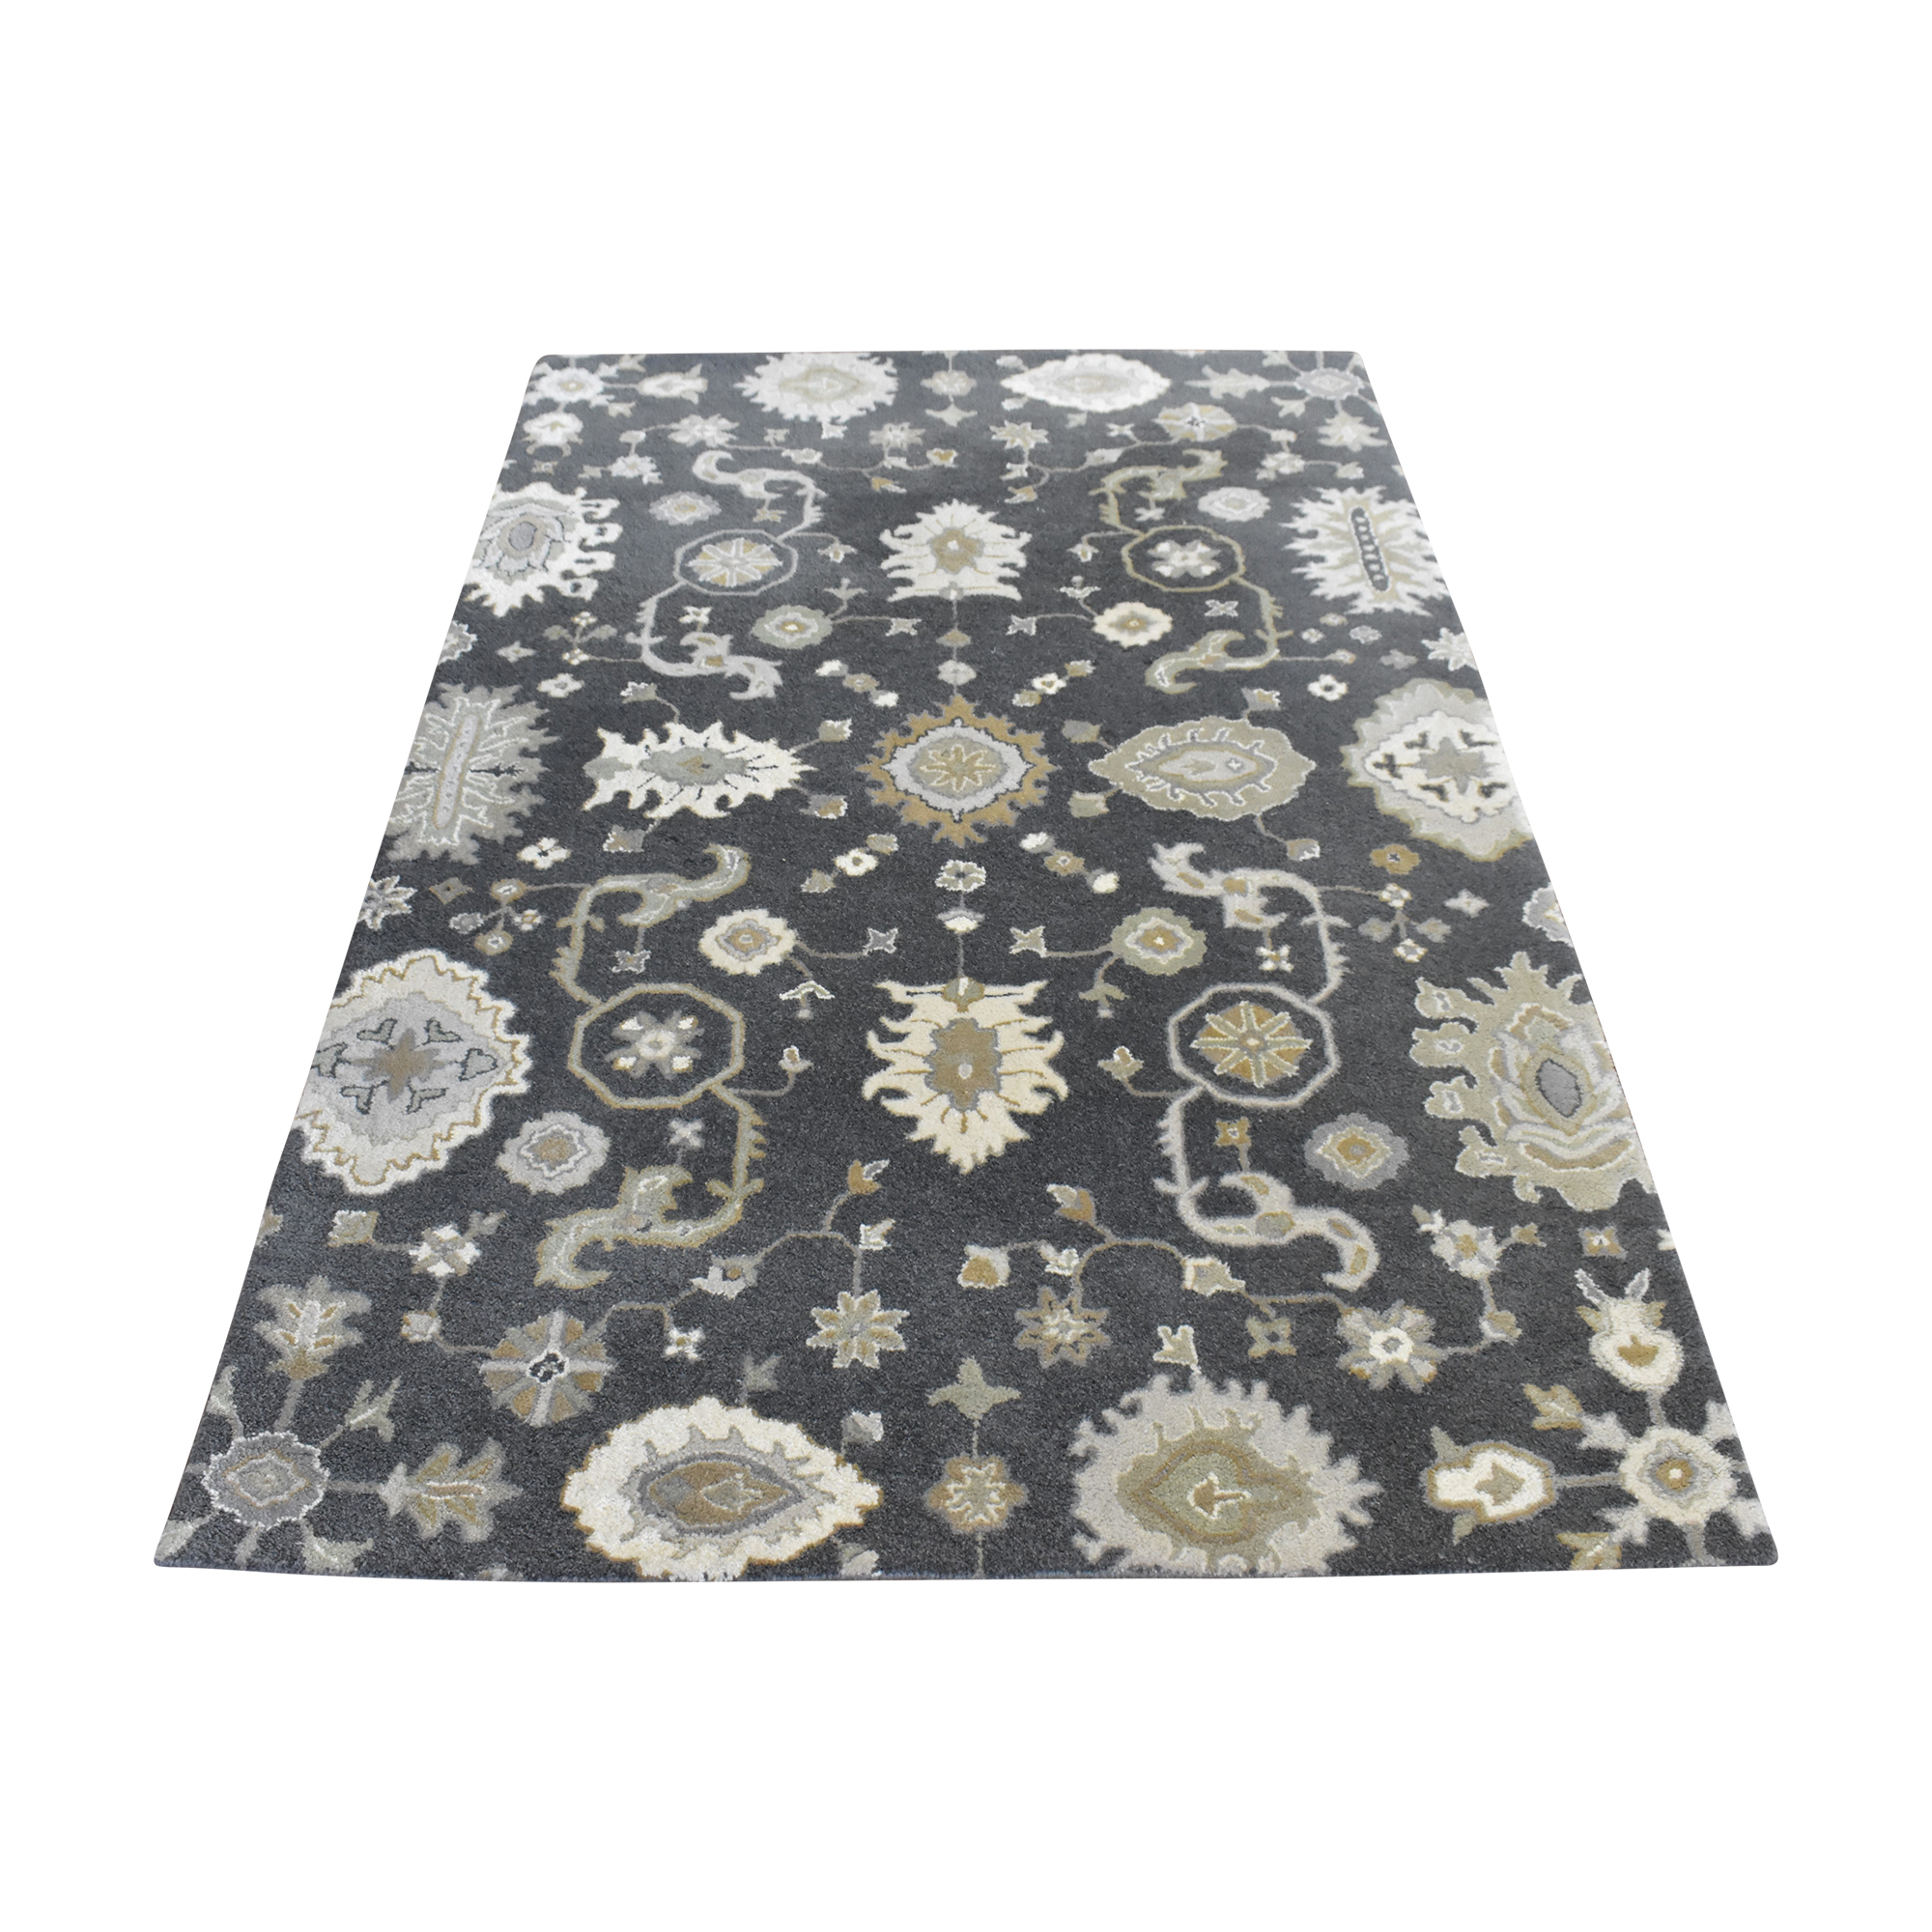 buy Crate & Barrel Juno Rug 5 x 8 Crate & Barrel